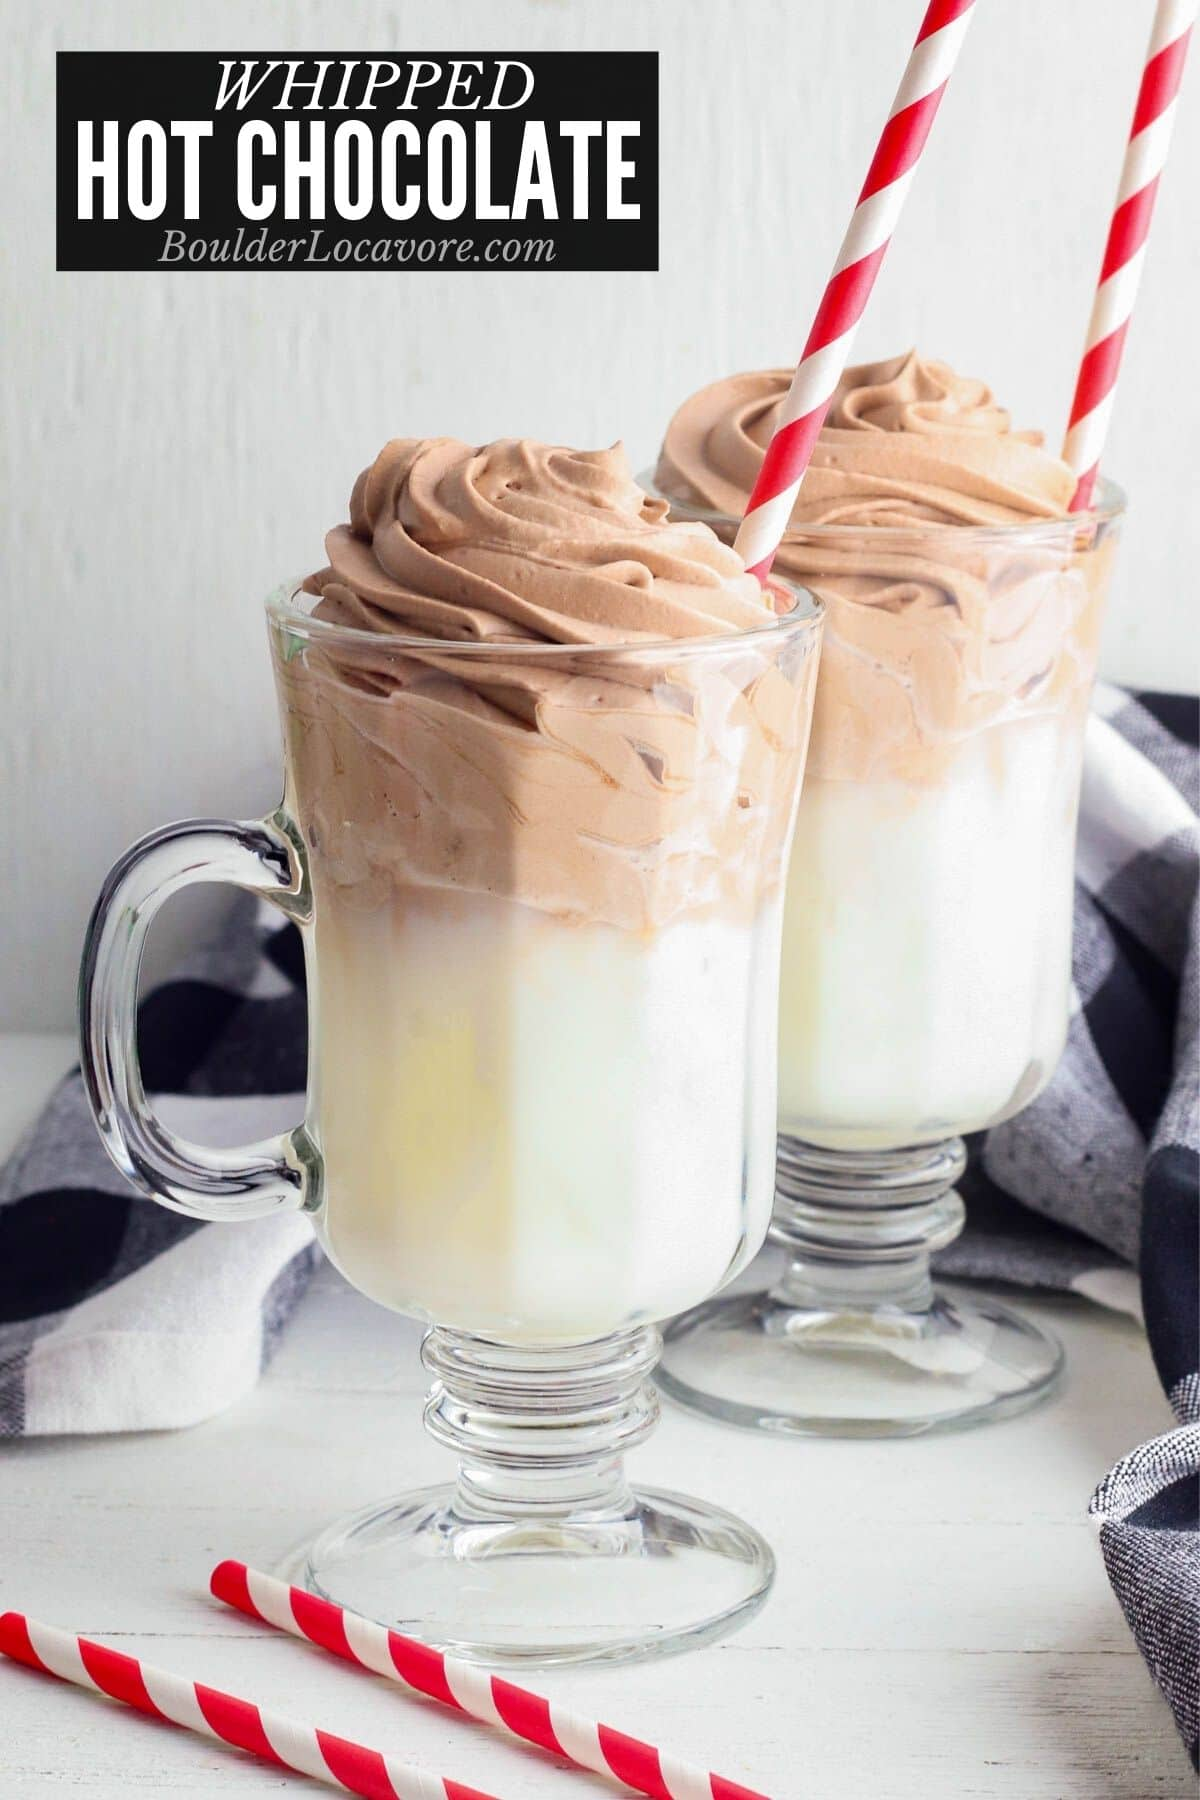 Whipped Hot Chocolate Recipe Tik Tok Recipe Boulder Locavore